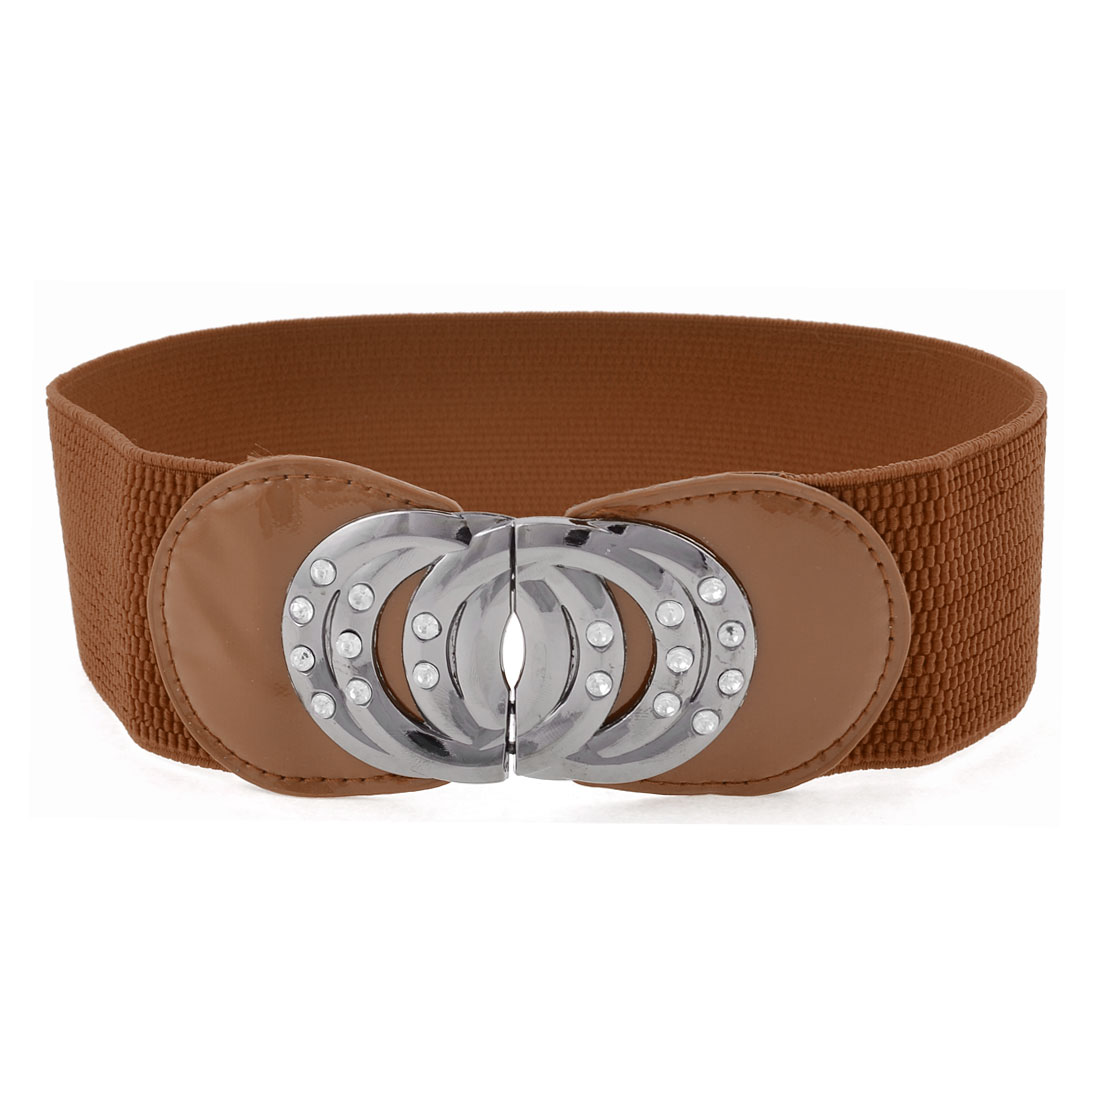 Women 5.9cm Wide Metal Interlock Buckle Brown Stretchy Textured Cinch Belt